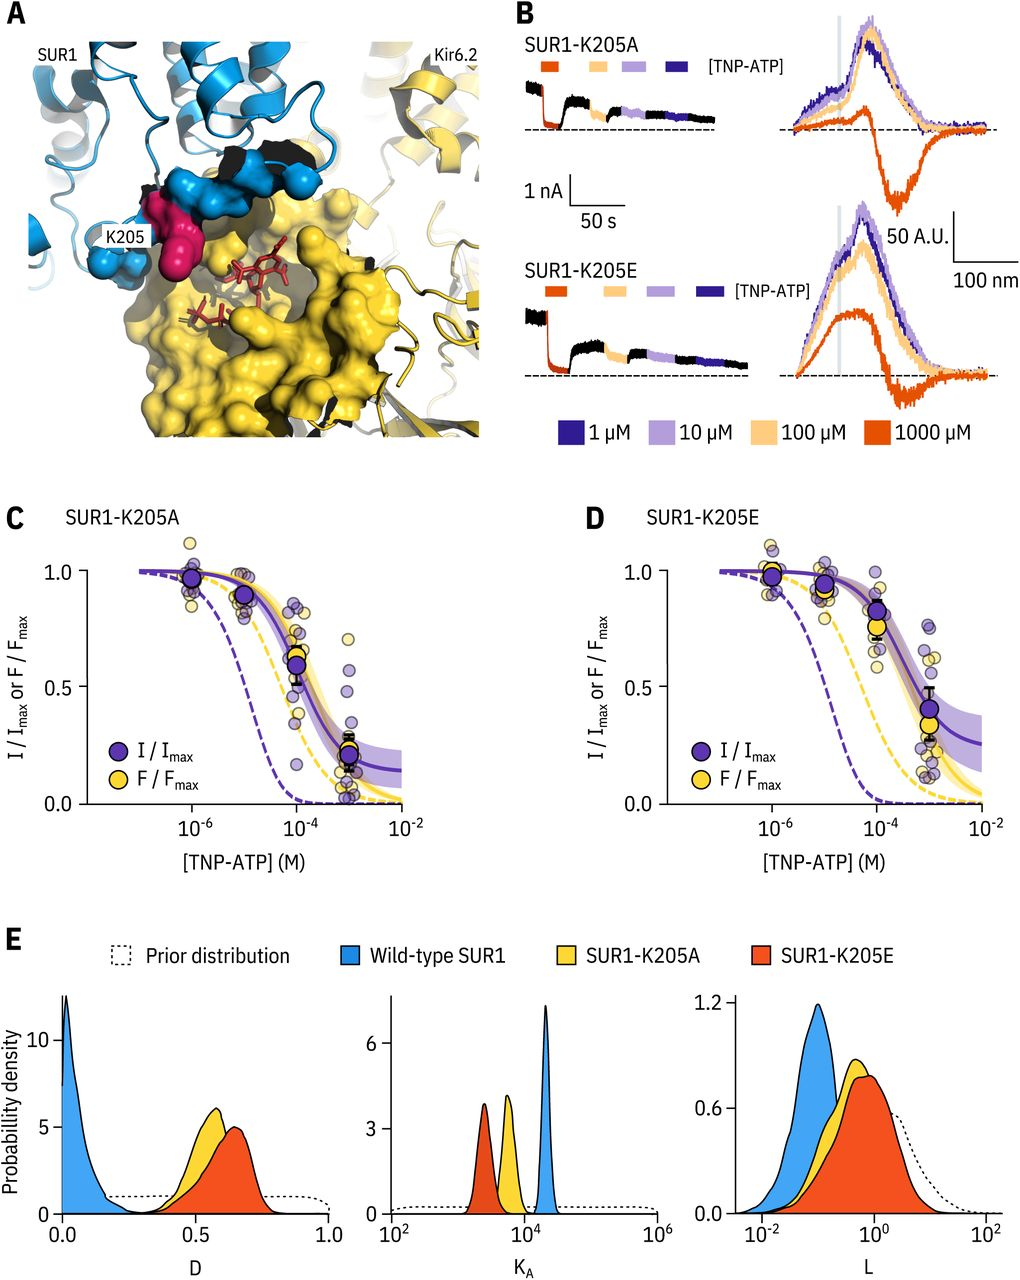 SUR1-K205 modulates both nucleotide affinity and inhibition of Kir6.2. A. H ydrophobic surface representation of Kir6.2 (yellow, PDB accession #6BAA) and SUR1 (blue, PDB accession #6PZI), Residue K205 on SUR1 is highlighted in pink. As this residue was built as an alanine in the structure, we used the mutagenesis tool in PyMol to insert the native lysine residue. A docked TNP-ATP molecule is shown in red, B. Representative current and fluorescence traces acquired simultaneously from excised patchesexpressing Kir6.2*-GFP with SUR1-K205Aor SUR1-K205E. C,D. Concentration-response for TNP-ATP inhibition of currents ( I / I max ) and for quenching of ANAP fluorescence ( F / F max ) in excised inside-out membrane patches expressing Kir6.2*-GFP + SUR1-K205A (C, n = 9) or Kir6.2*-GFP + SUR1-K205E (D, n = 9), Data were fit to the MWC-type model. Solid curves represent the median fits and shaded areas indicate the 95% quantile intervals. Fits to Kir6.2*-GFP + wild-type SUR1 are shown as dashed curves, E. Posterior probability distributions for the full MWC-type model fit to Kir6.2*-GFP co-expressed with wild-type SUR1 (fits from Figure 2 ), SUR1-K205A and SUR1-K205E overlaid on the prior probability distribution.